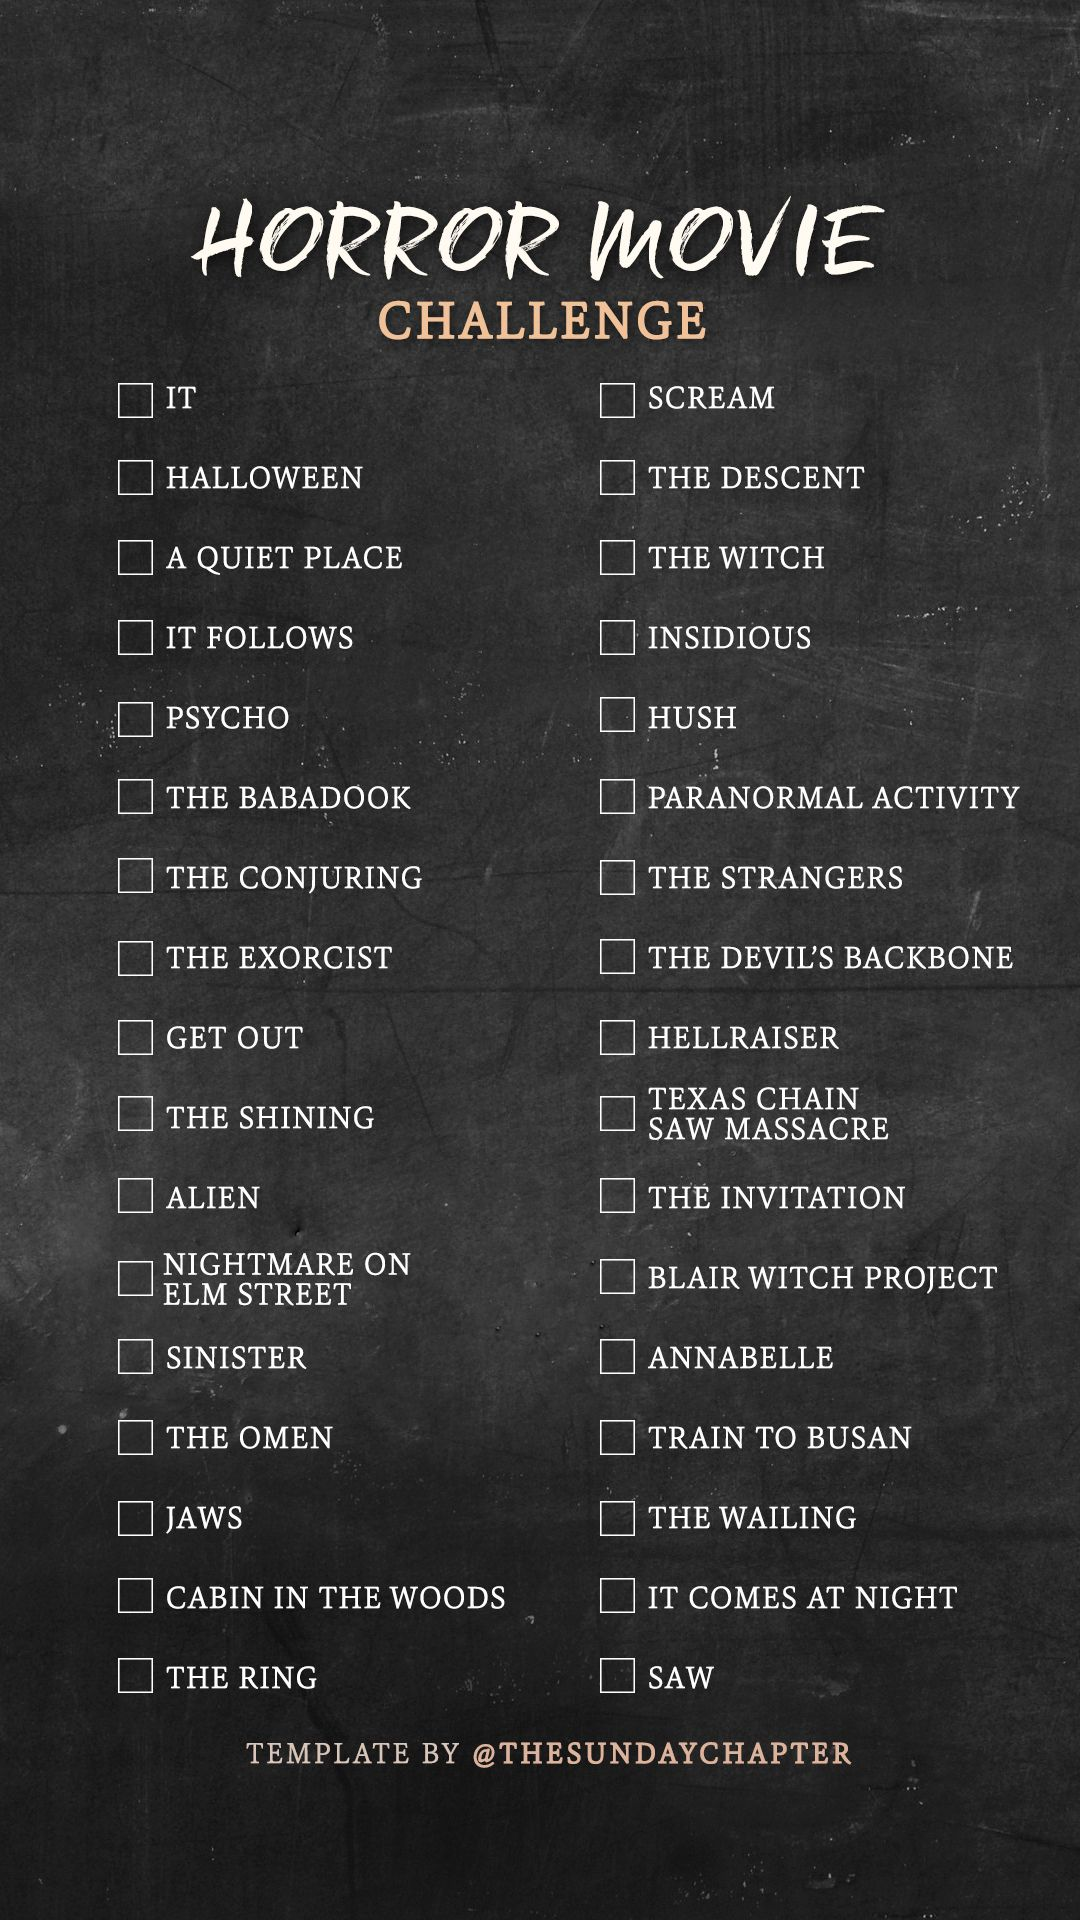 Horror movie instagram story template #netflixmovies